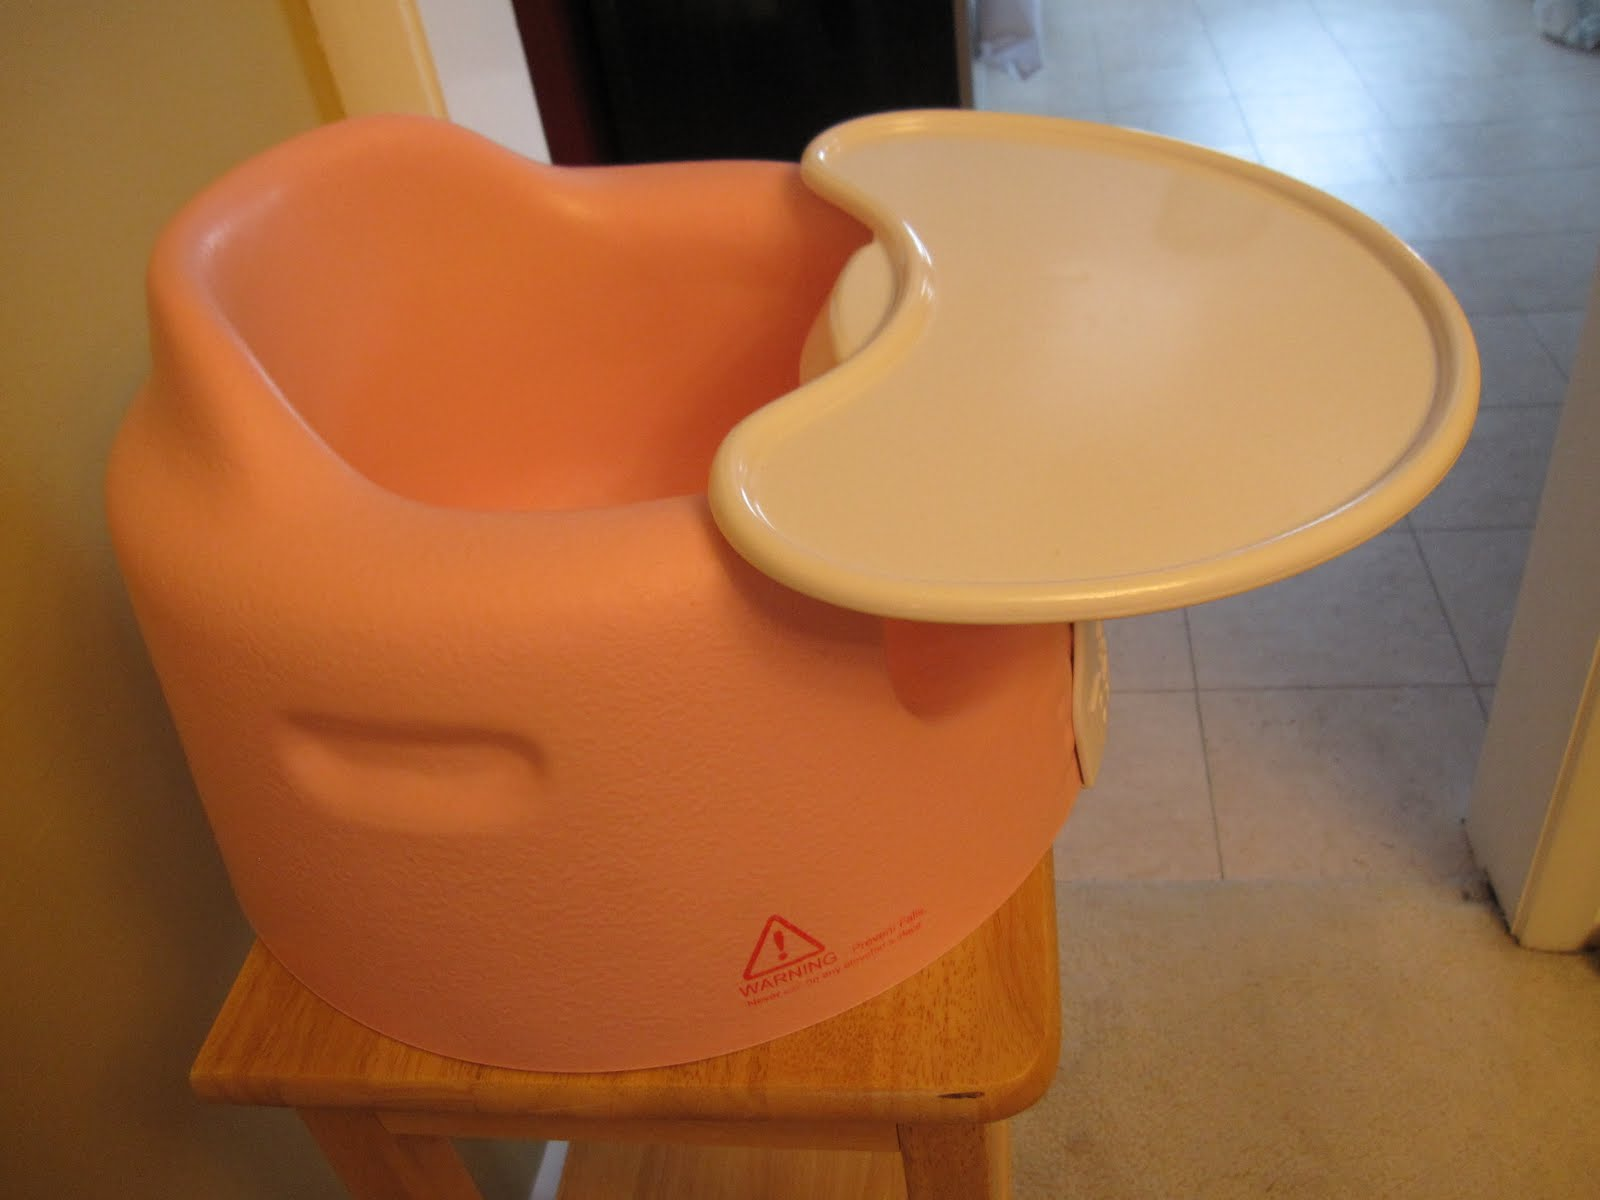 Presale Garage Sale ITEM 10 $25 00 Pink Bumbo Chair with Tray